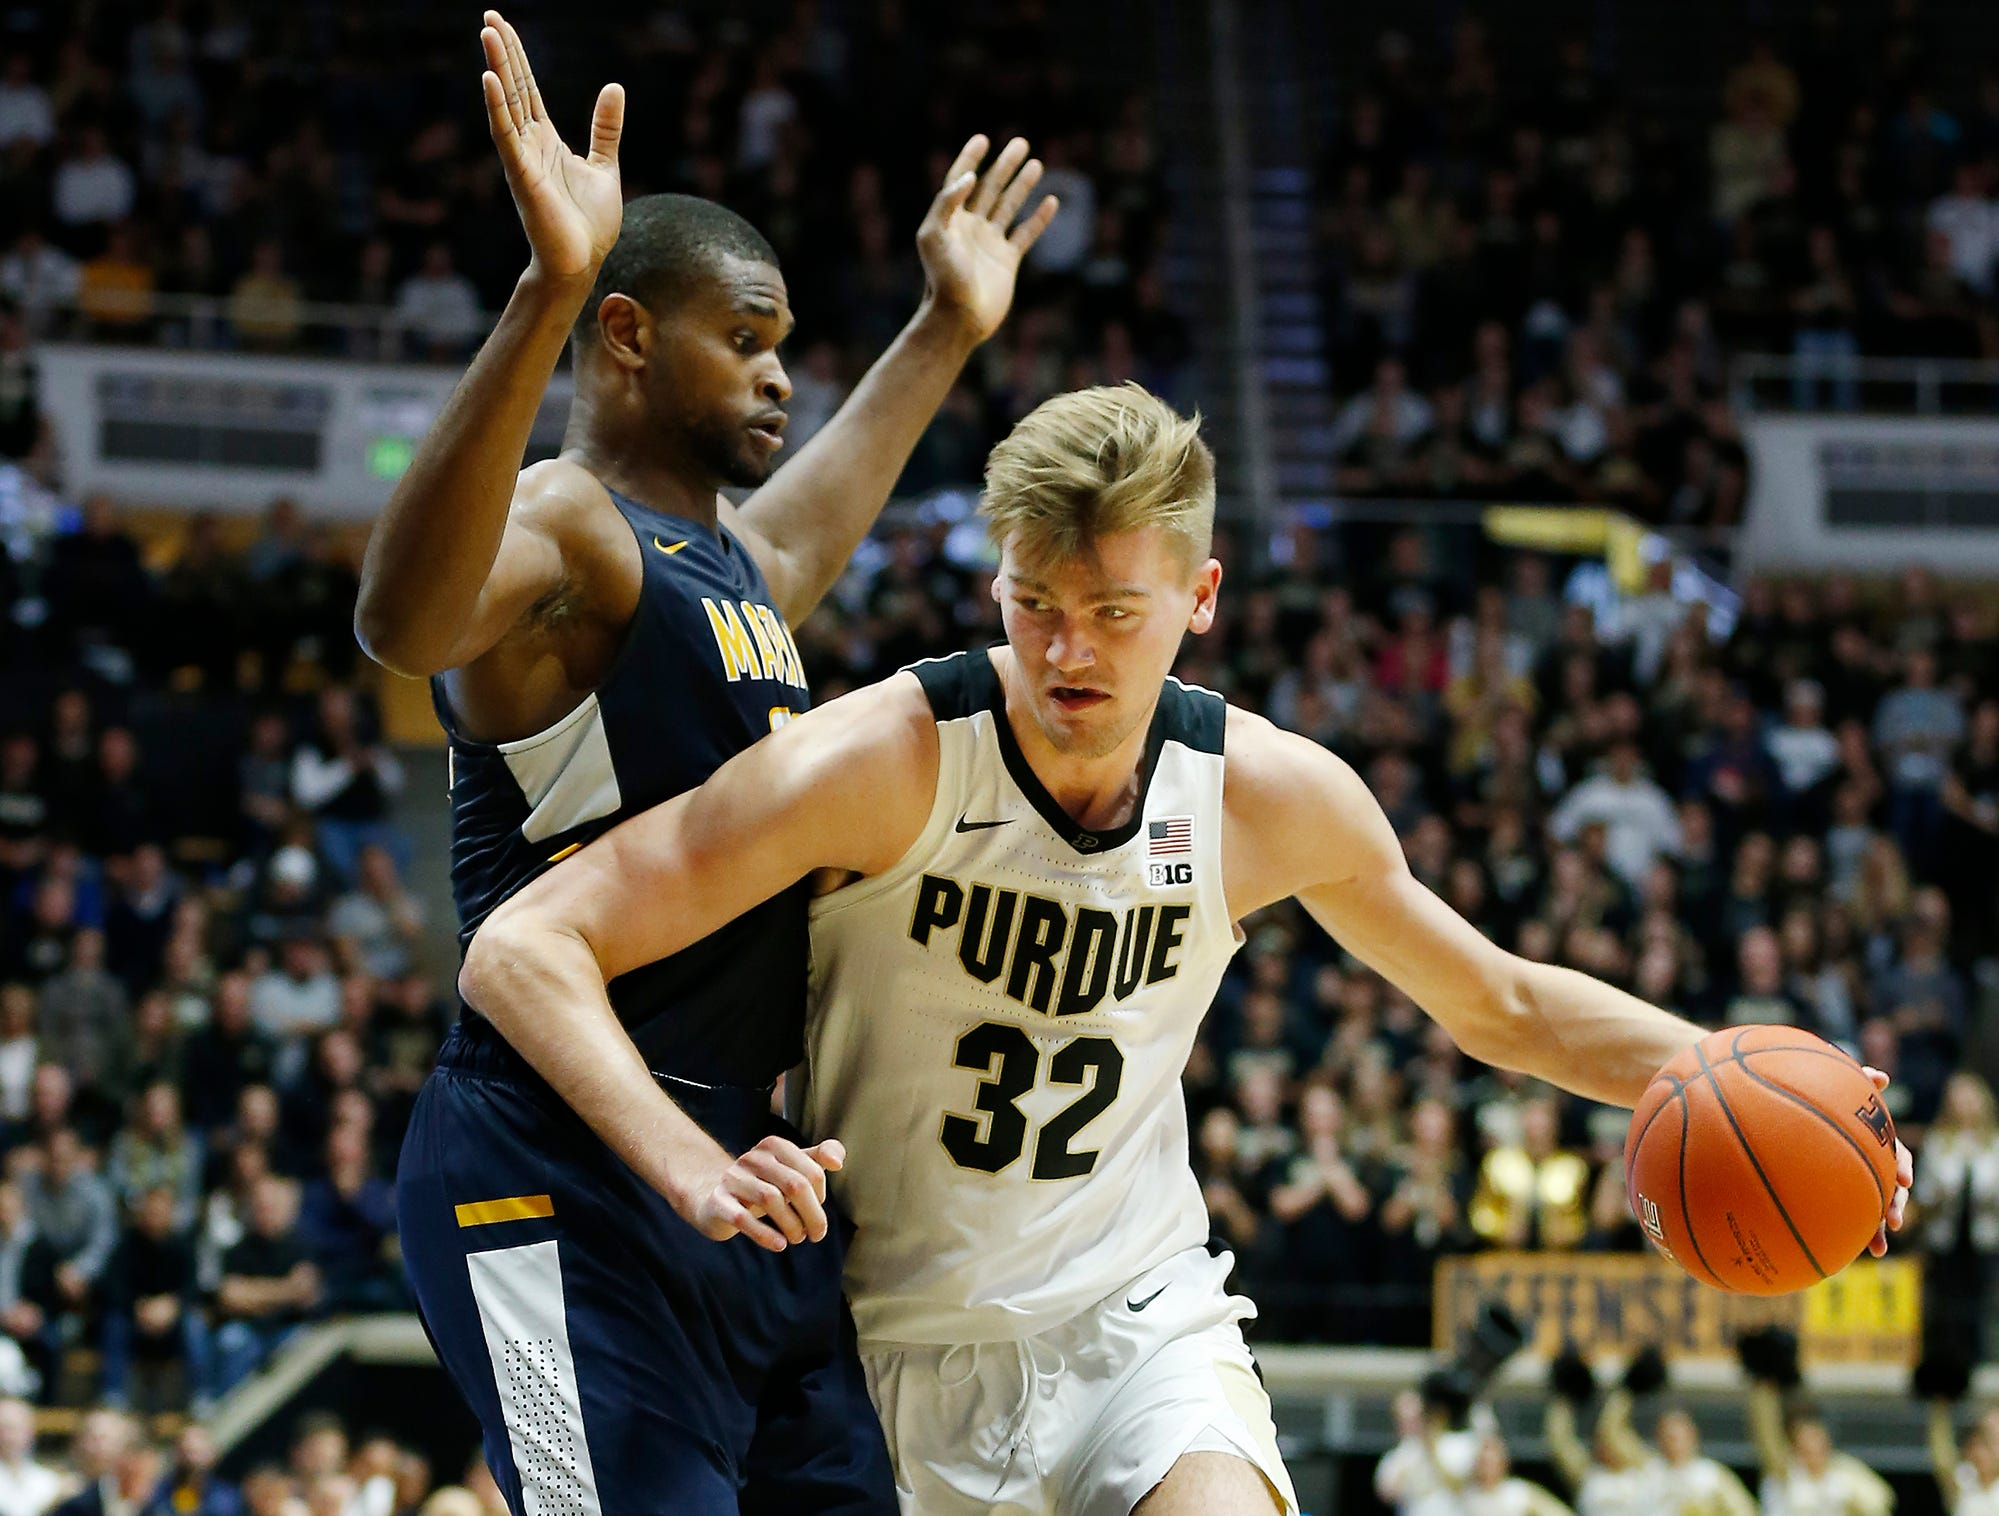 Matt Haarms of Purdue spins to the basket against Jonathan Nwankwo of Marian University Thursday, November 1, 2018, at Mackey Arena. Purdue defeated Marian University 75-56.